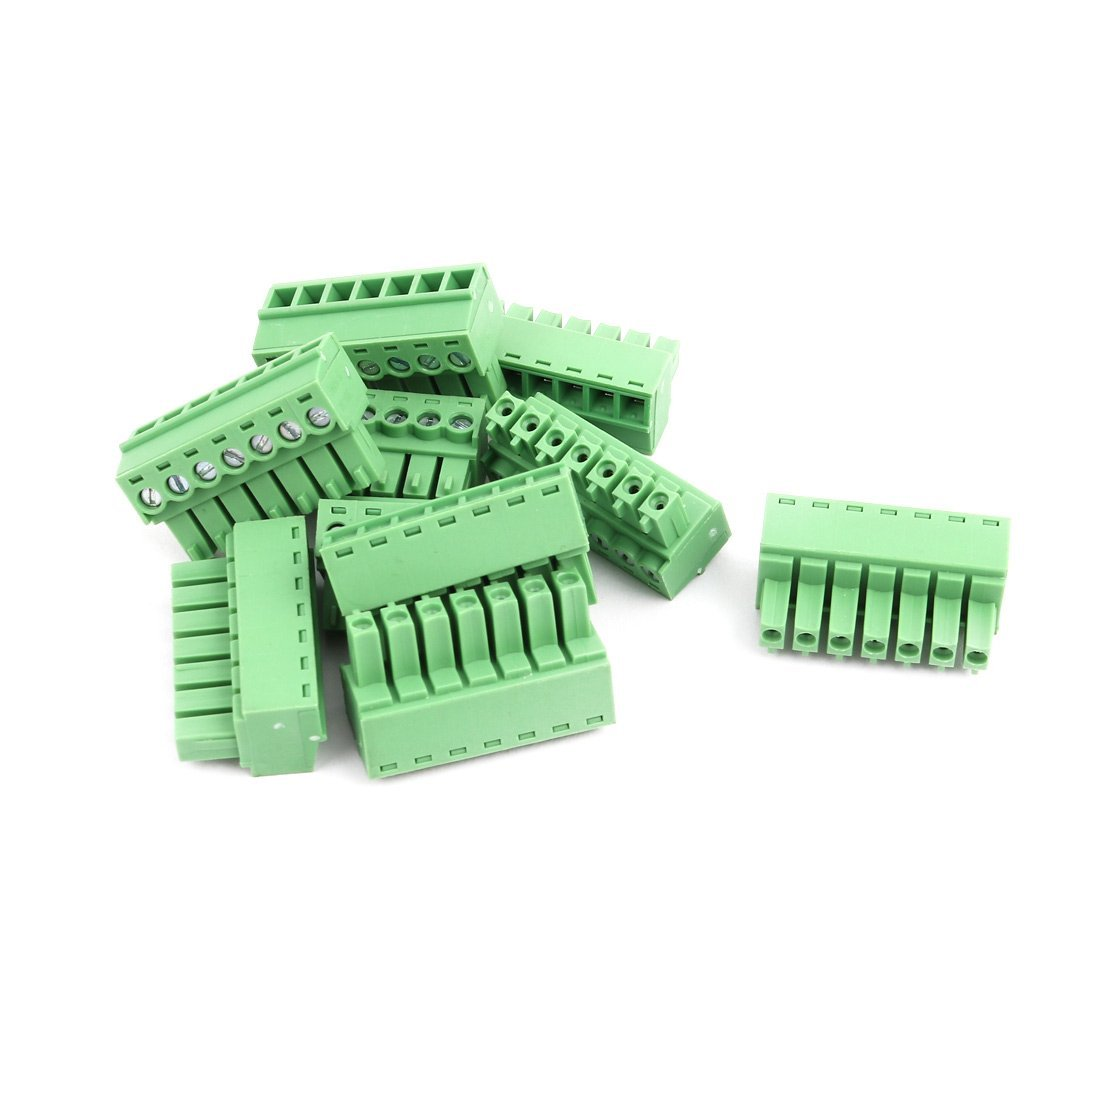 uxcell 10Pcs AC 300V 8A 3.81mm Pitch 7P Terminal Block Wire Connection for PCB Mounting